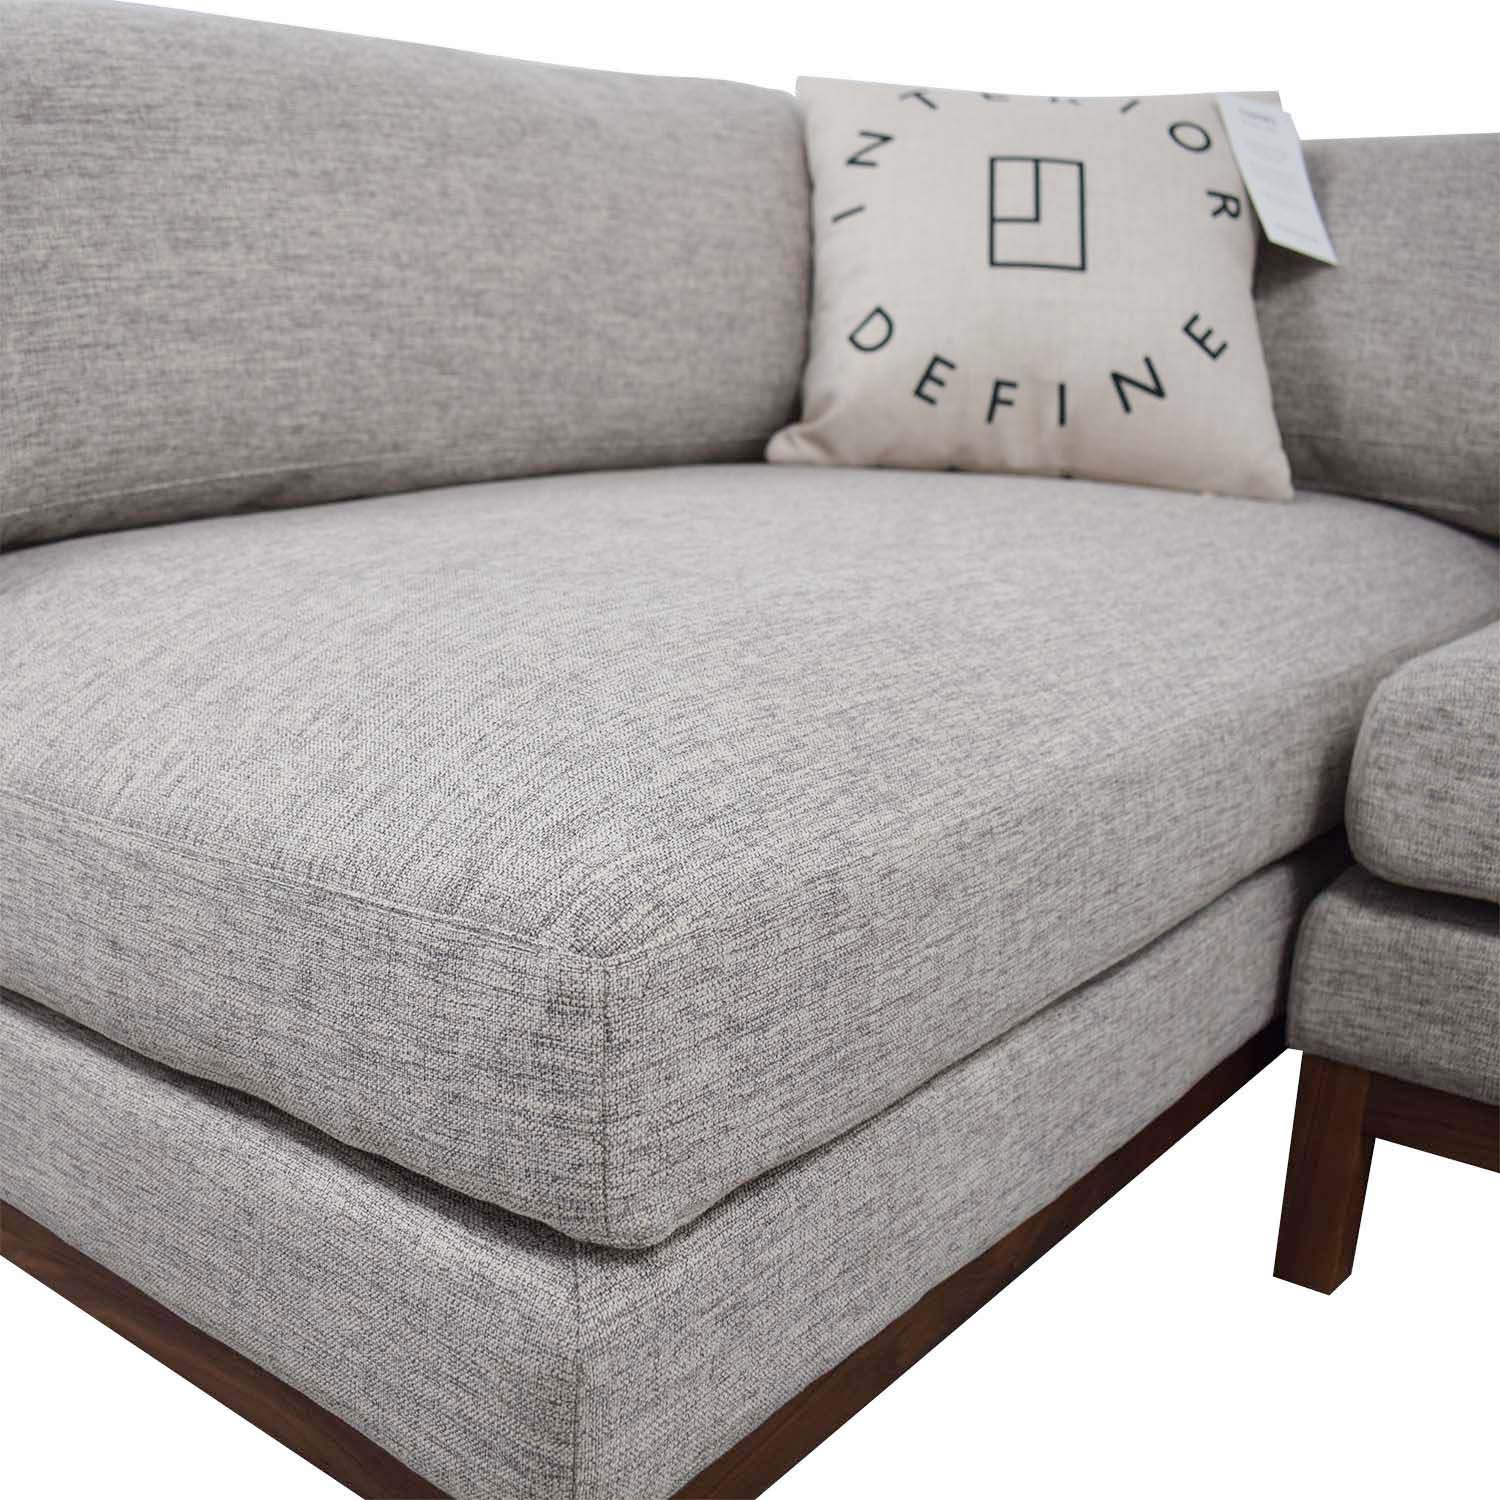 46 Off Jasper Heather Grey Left Chaise Sectional Sofas